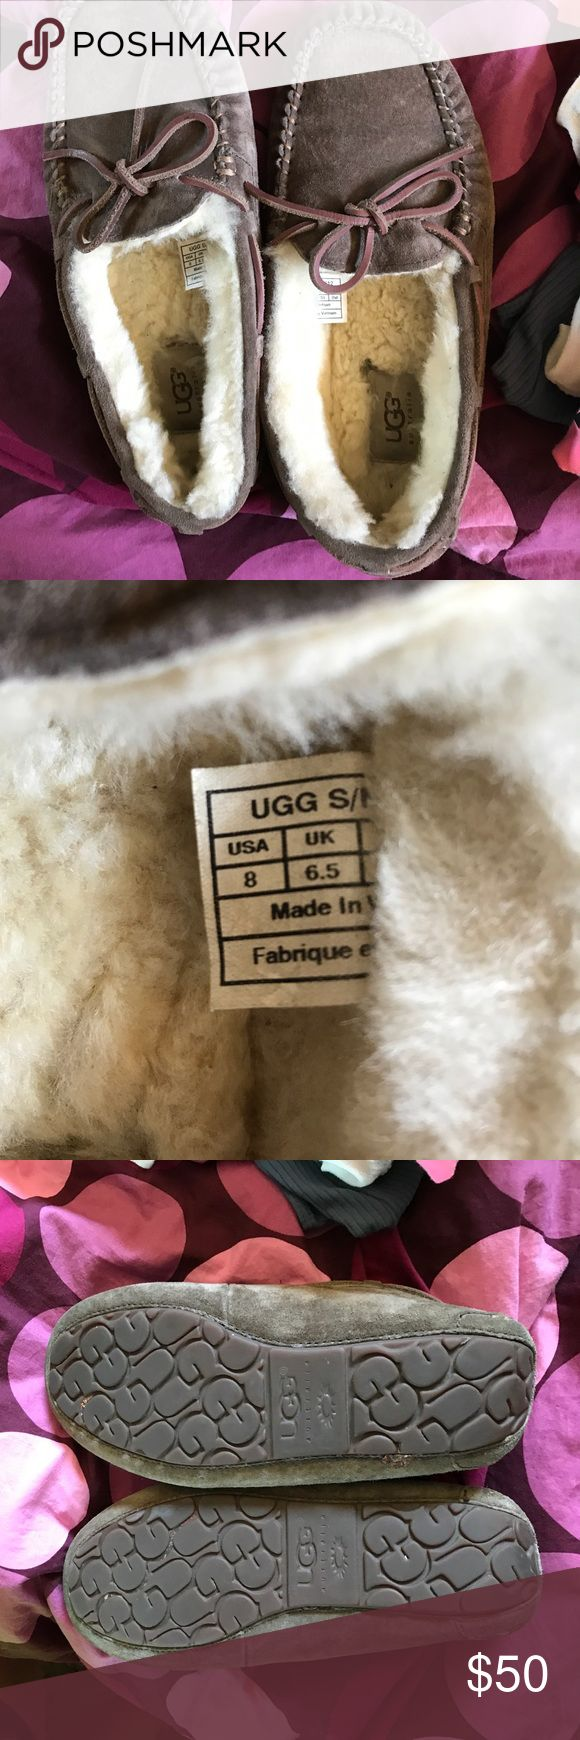 Ugg slippers Brown/fawn color comfortable ugg slippers UGG Shoes Slippers